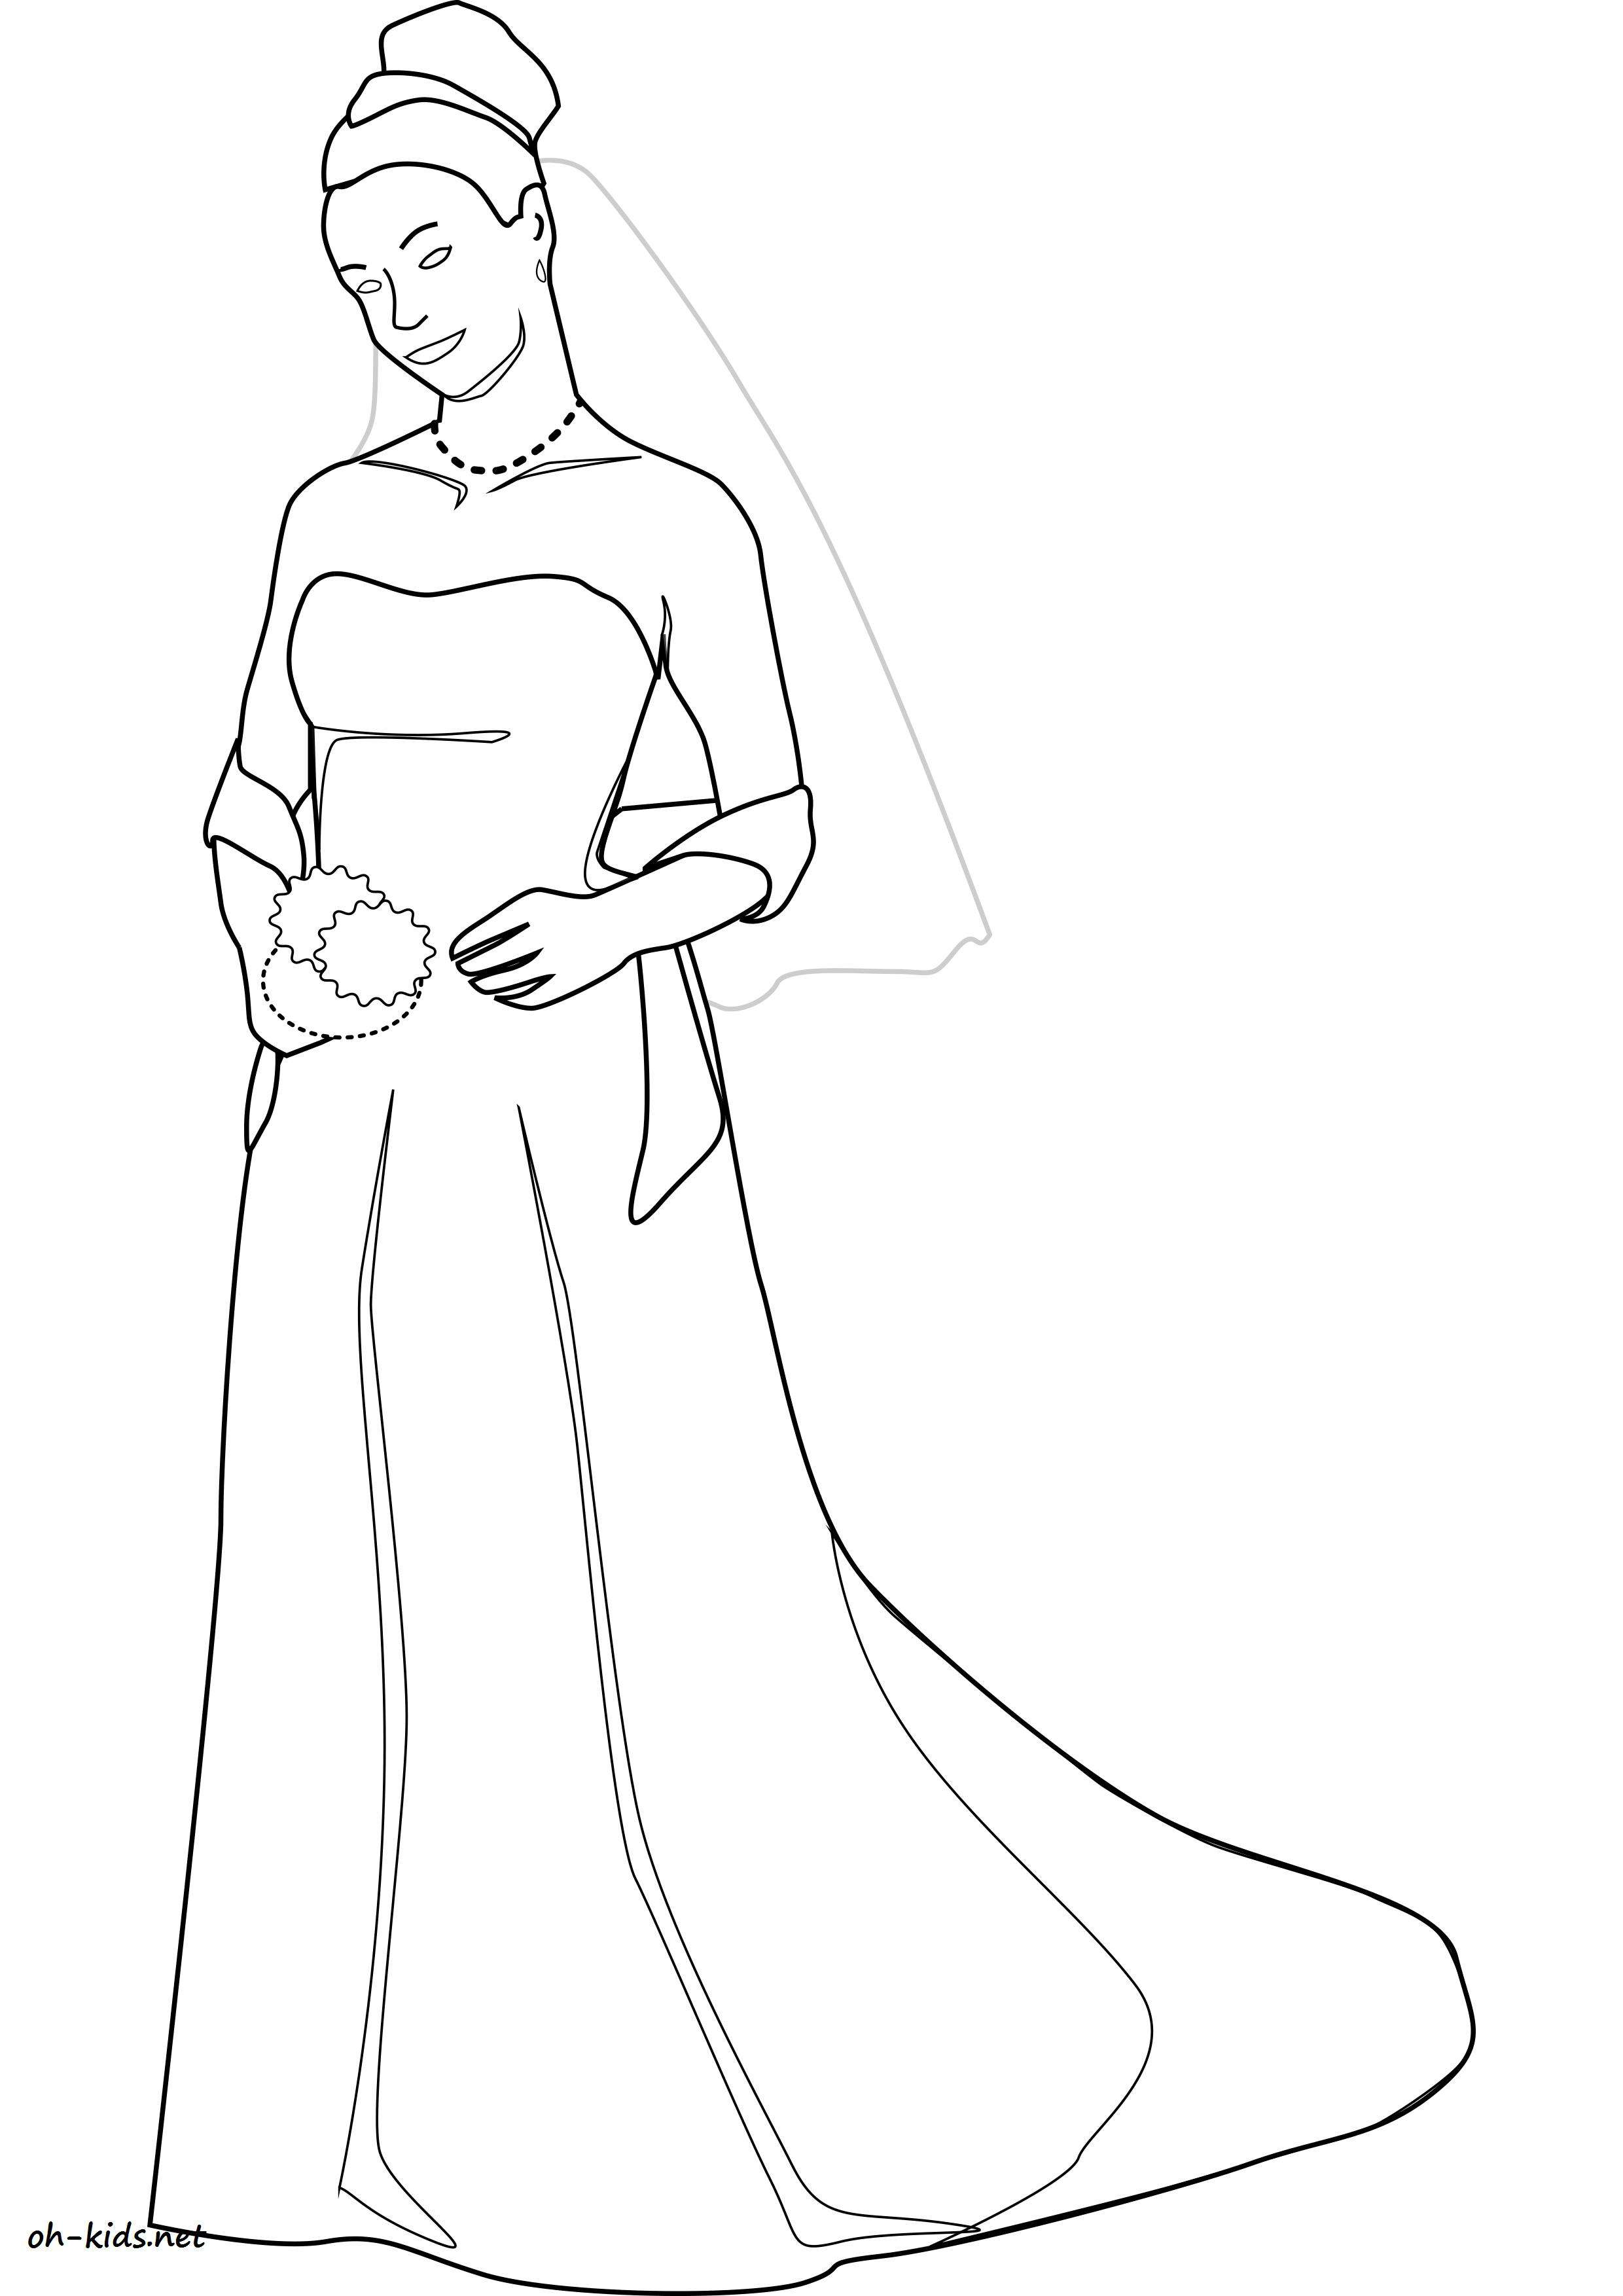 Coloriage mariage oh kids fr - Coloriage mariage a imprimer ...